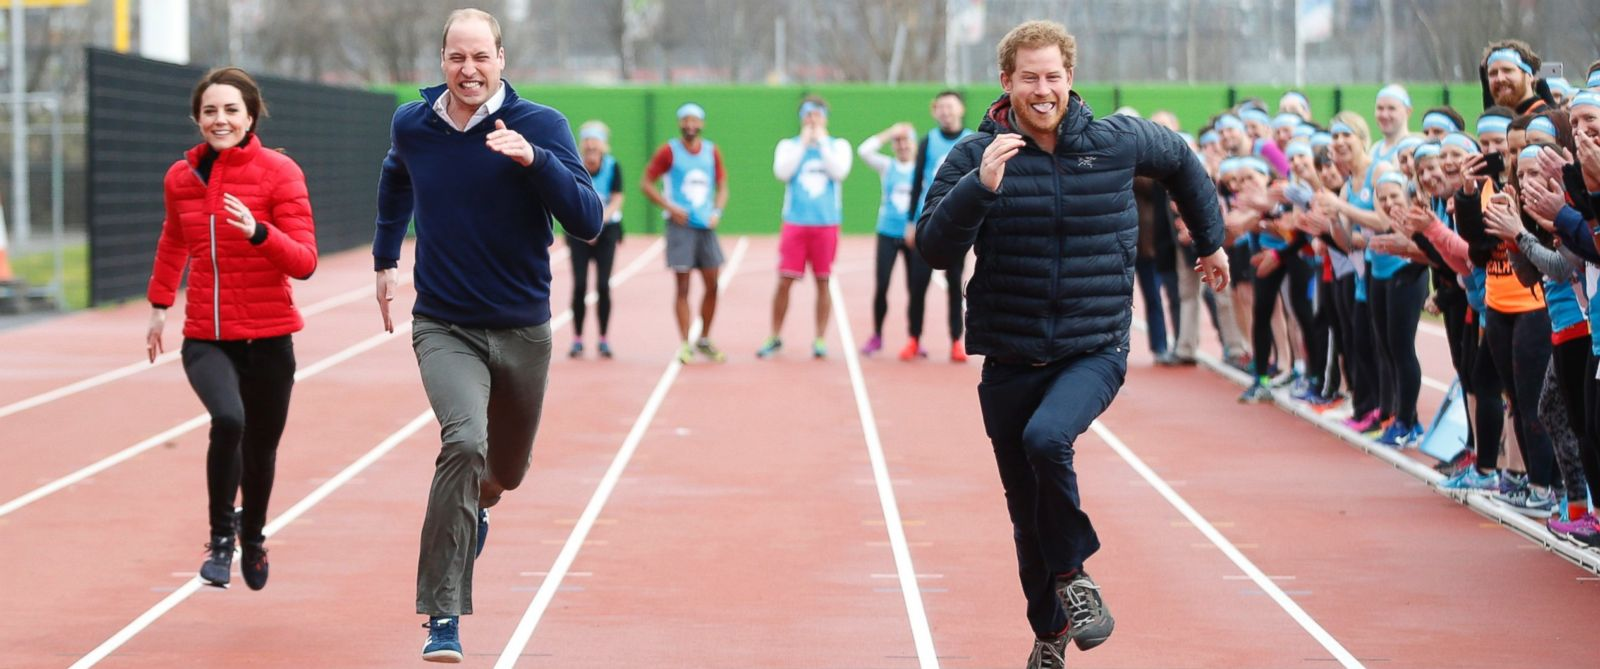 PHOTO: (L-R) Kate, the Duchess of Cambridge, Britains Prince William and Prince Harry take part in a relay race, during a training event to promote the charity Heads Together, at the Queen Elizabeth II Park in London, Feb. 5, 2017.